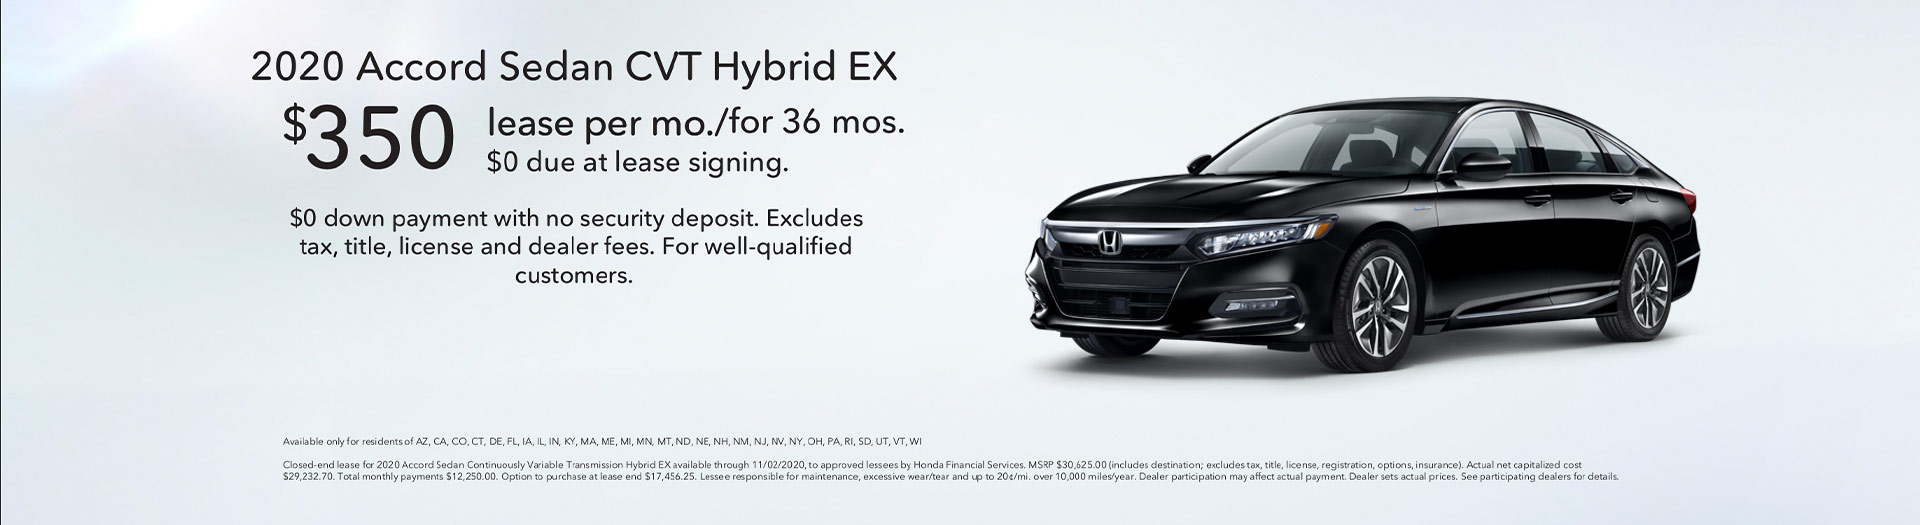 Honda Accord Hybrid Offer